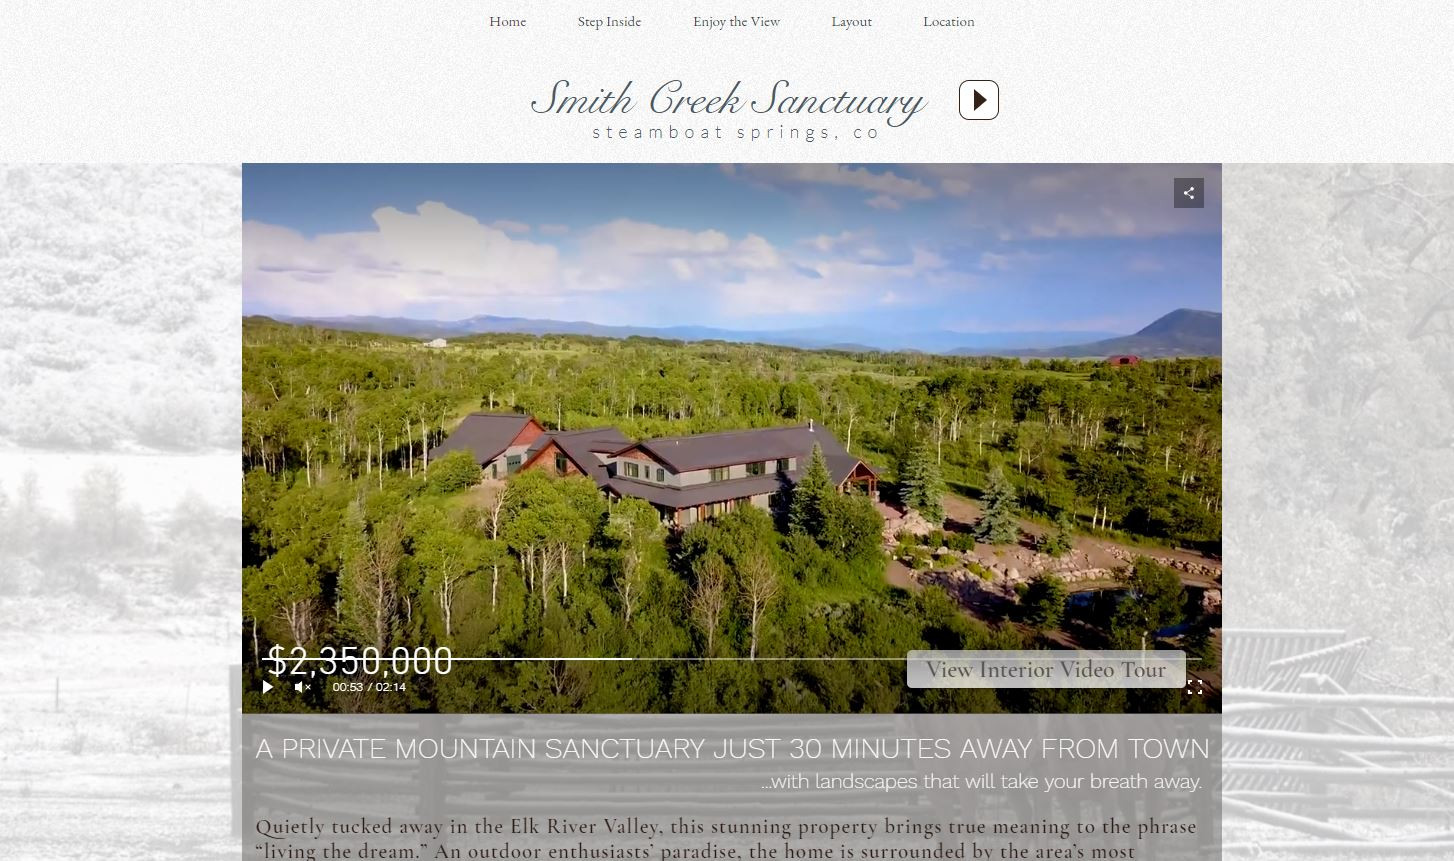 Smith Creek Website.JPG